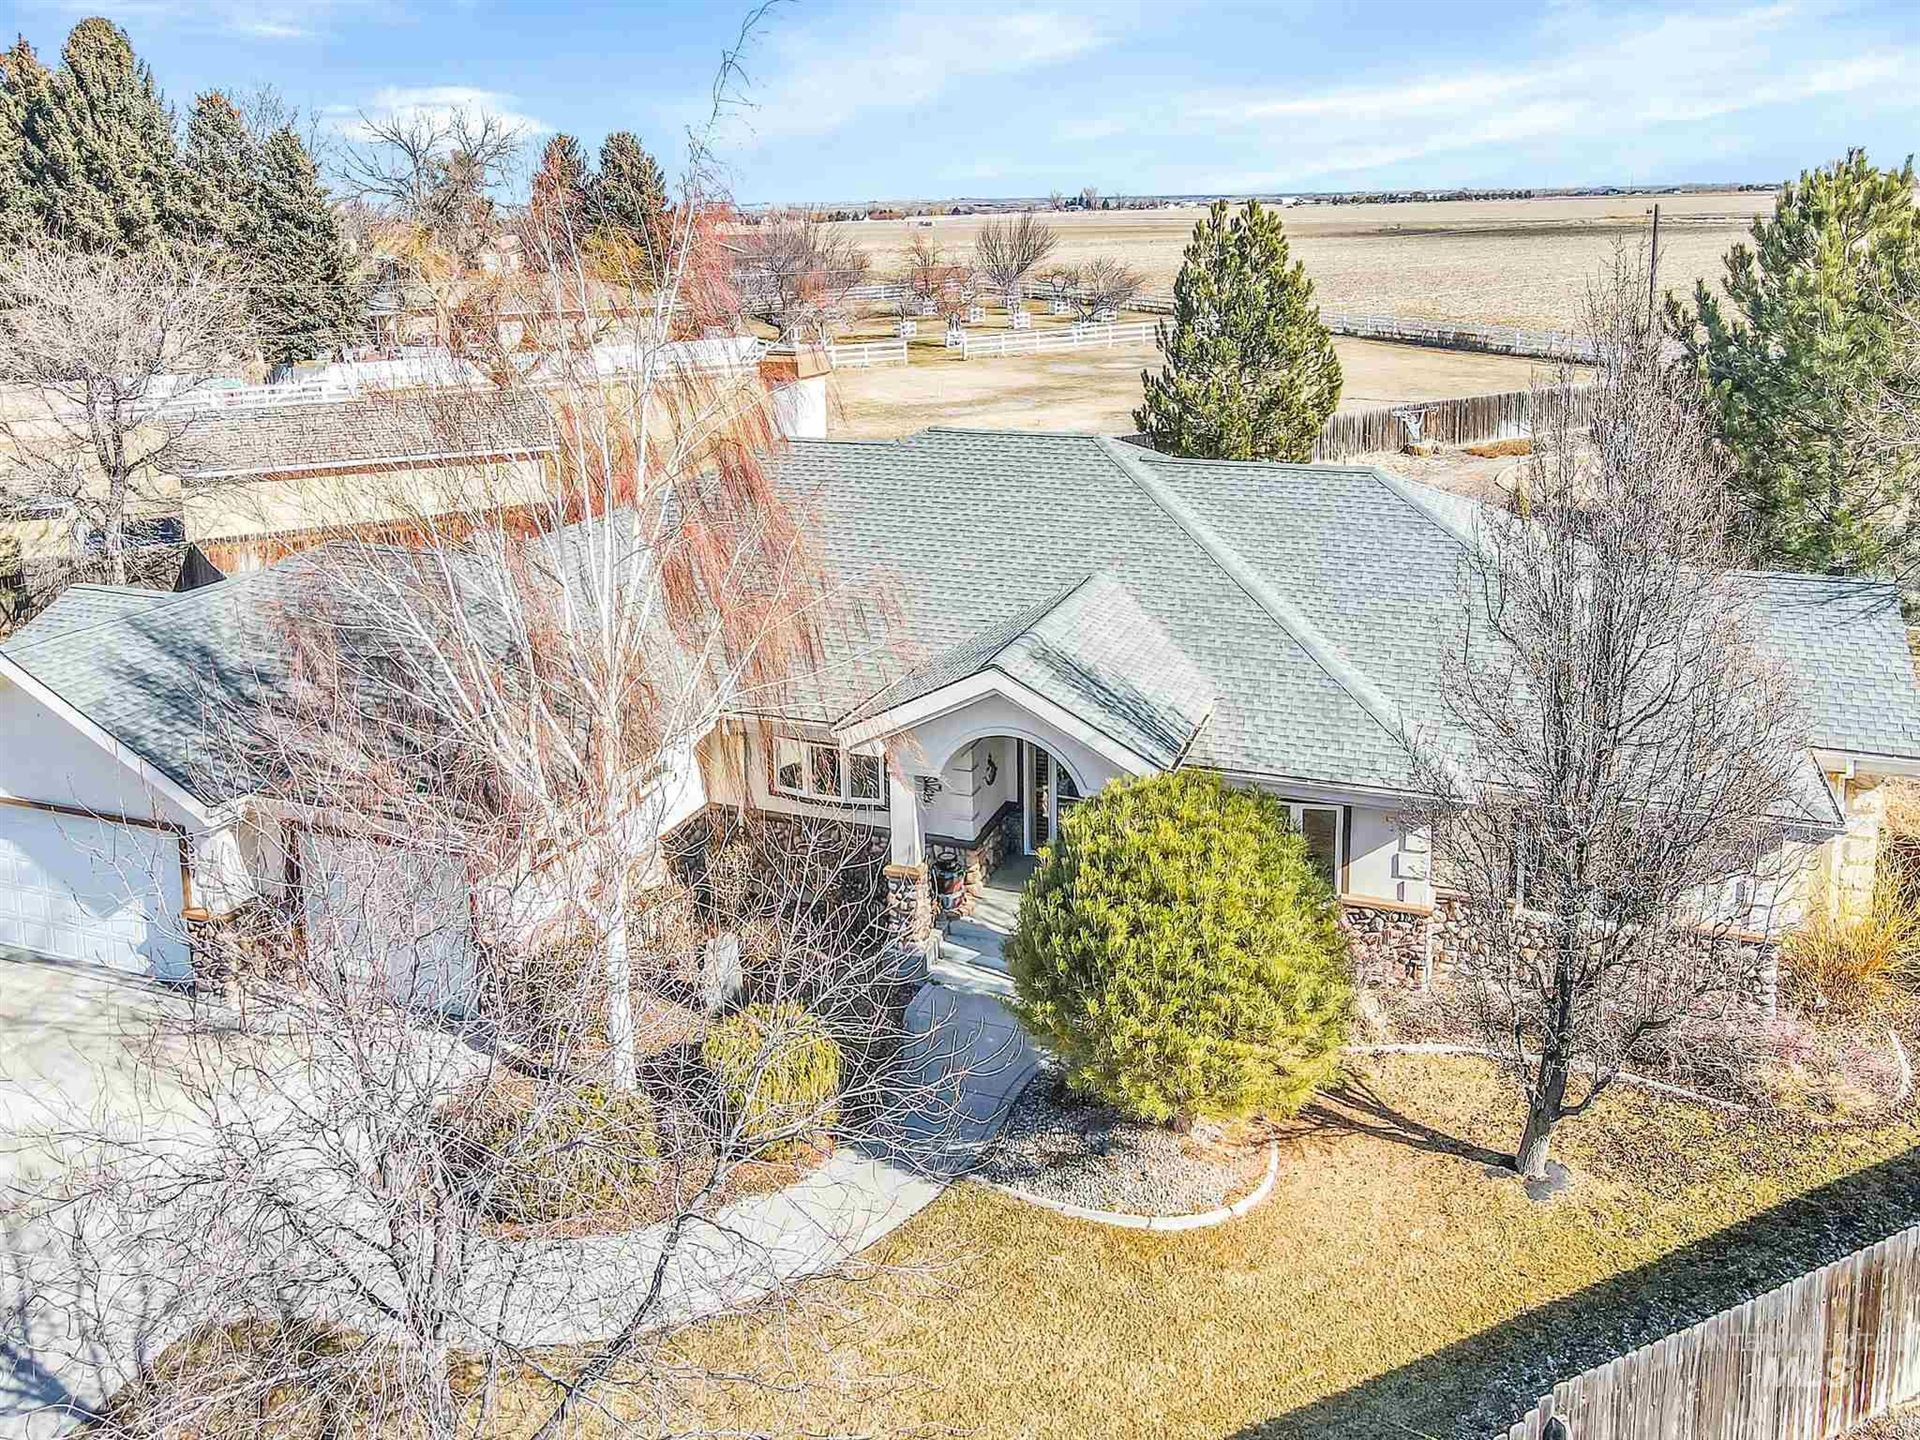 Photo of 3357 Longbow Dr, Twin Falls, ID 83301 (MLS # 98794816)